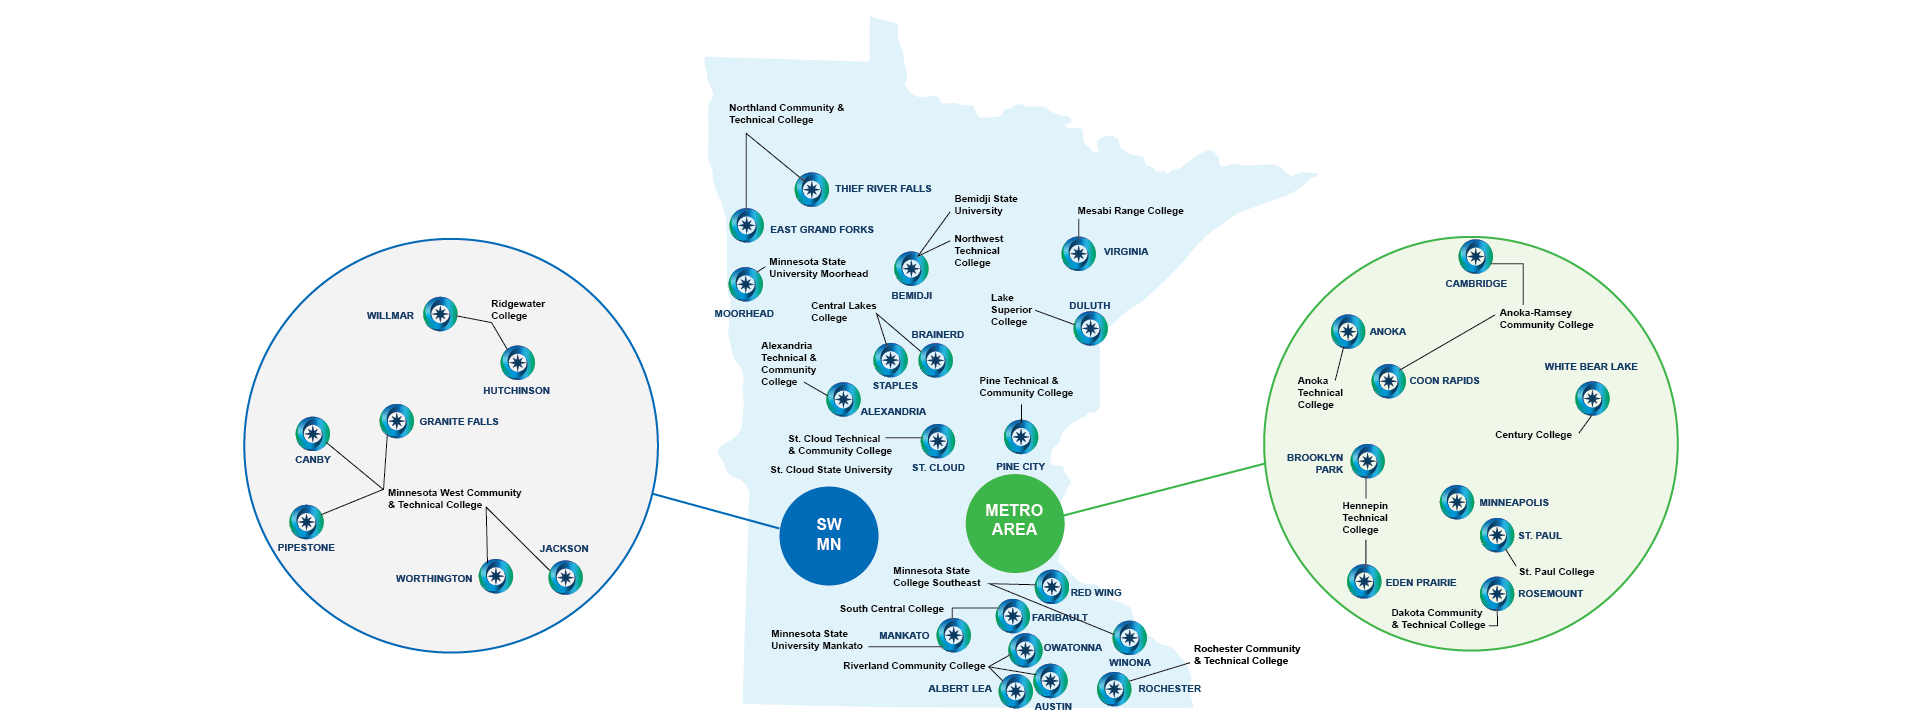 Map of the 24 Minnesota colleges with active manufacturing programs